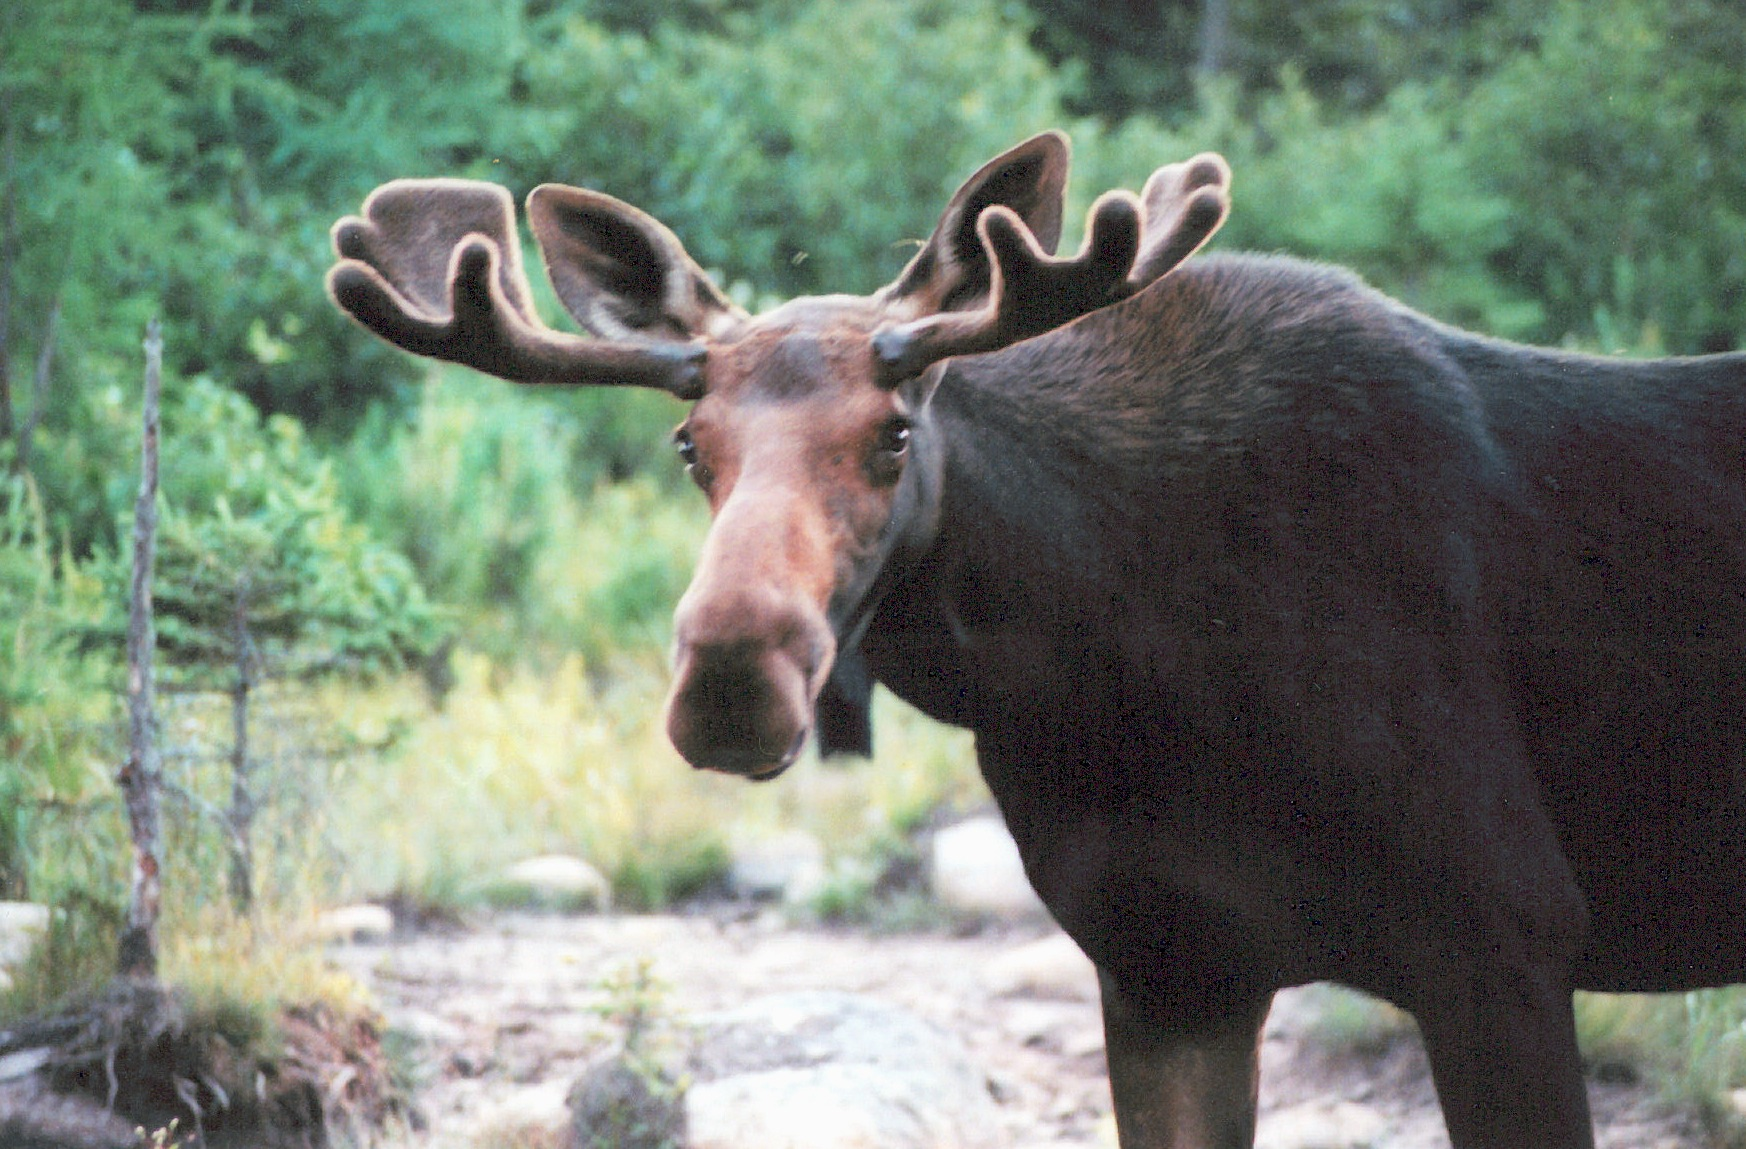 Large moose with fuzzy antlers stands in a stream, looking at the camera.